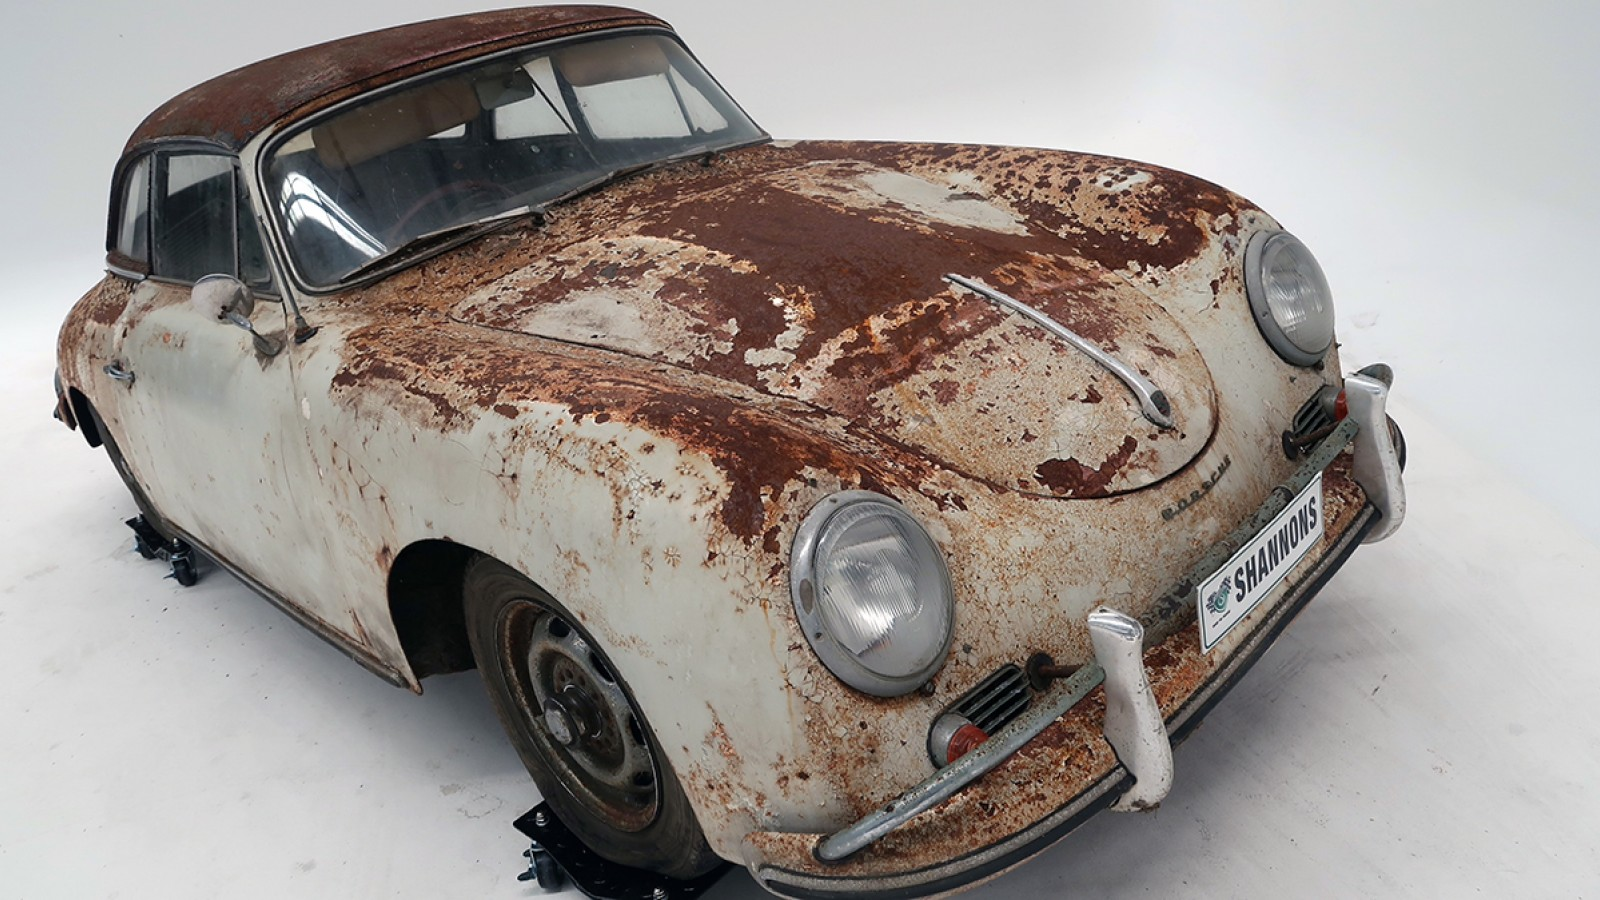 Well, someone did just that! At a recent auction, this 63-year-old Porsche 356A fetched $230,000 AUD, surprising even the auction holders. Throwing in an extra $6,000 AUD would net the buyer of this rust bucket a brand-new 911.